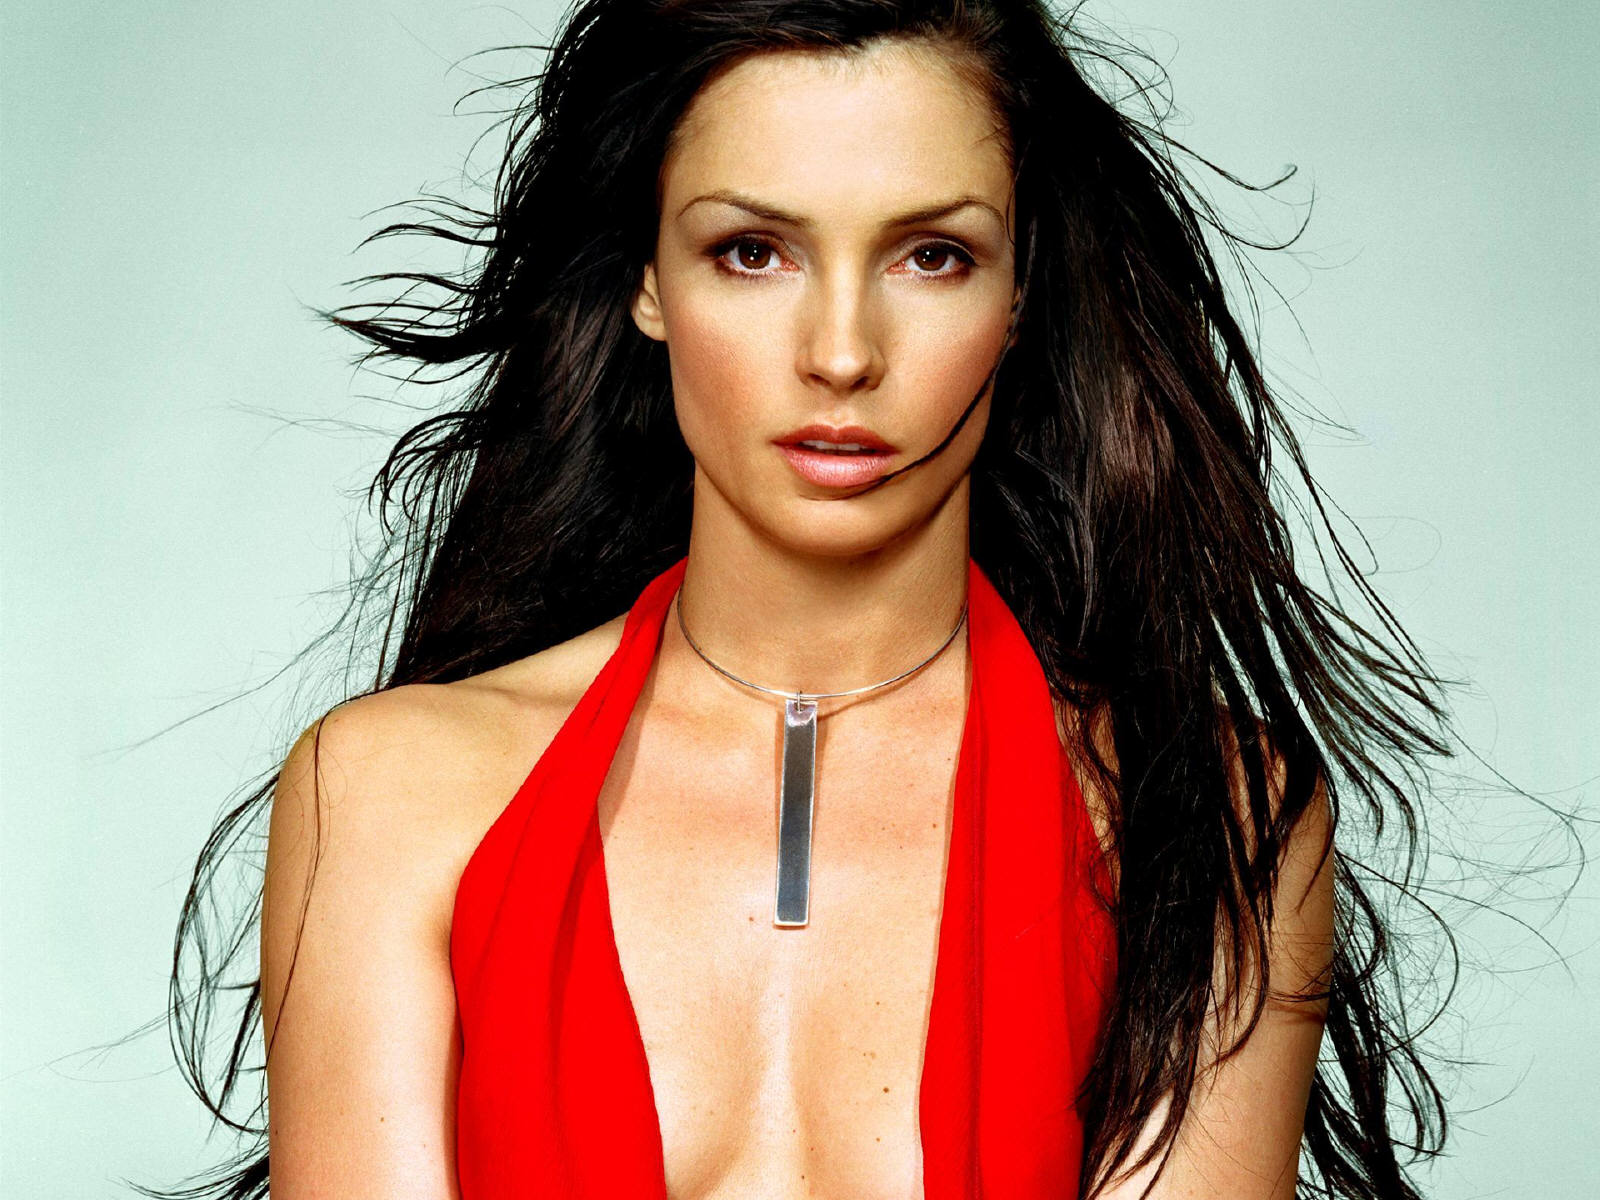 janssen having sex famke janssen wet famke janssen lord of